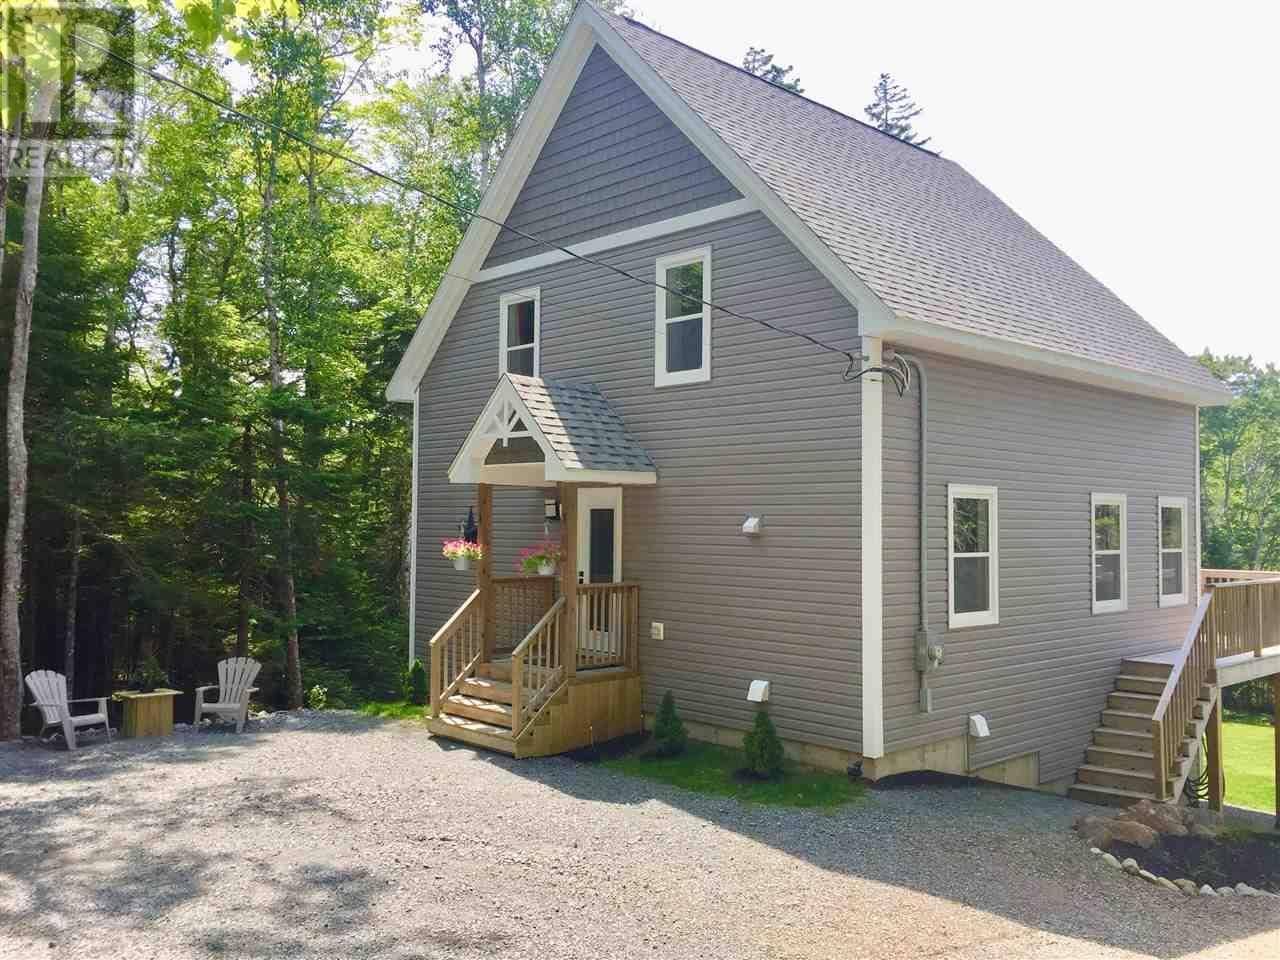 House for sale at 175 Tanglewood Dr Mount Uniacke Nova Scotia - MLS: 201912674